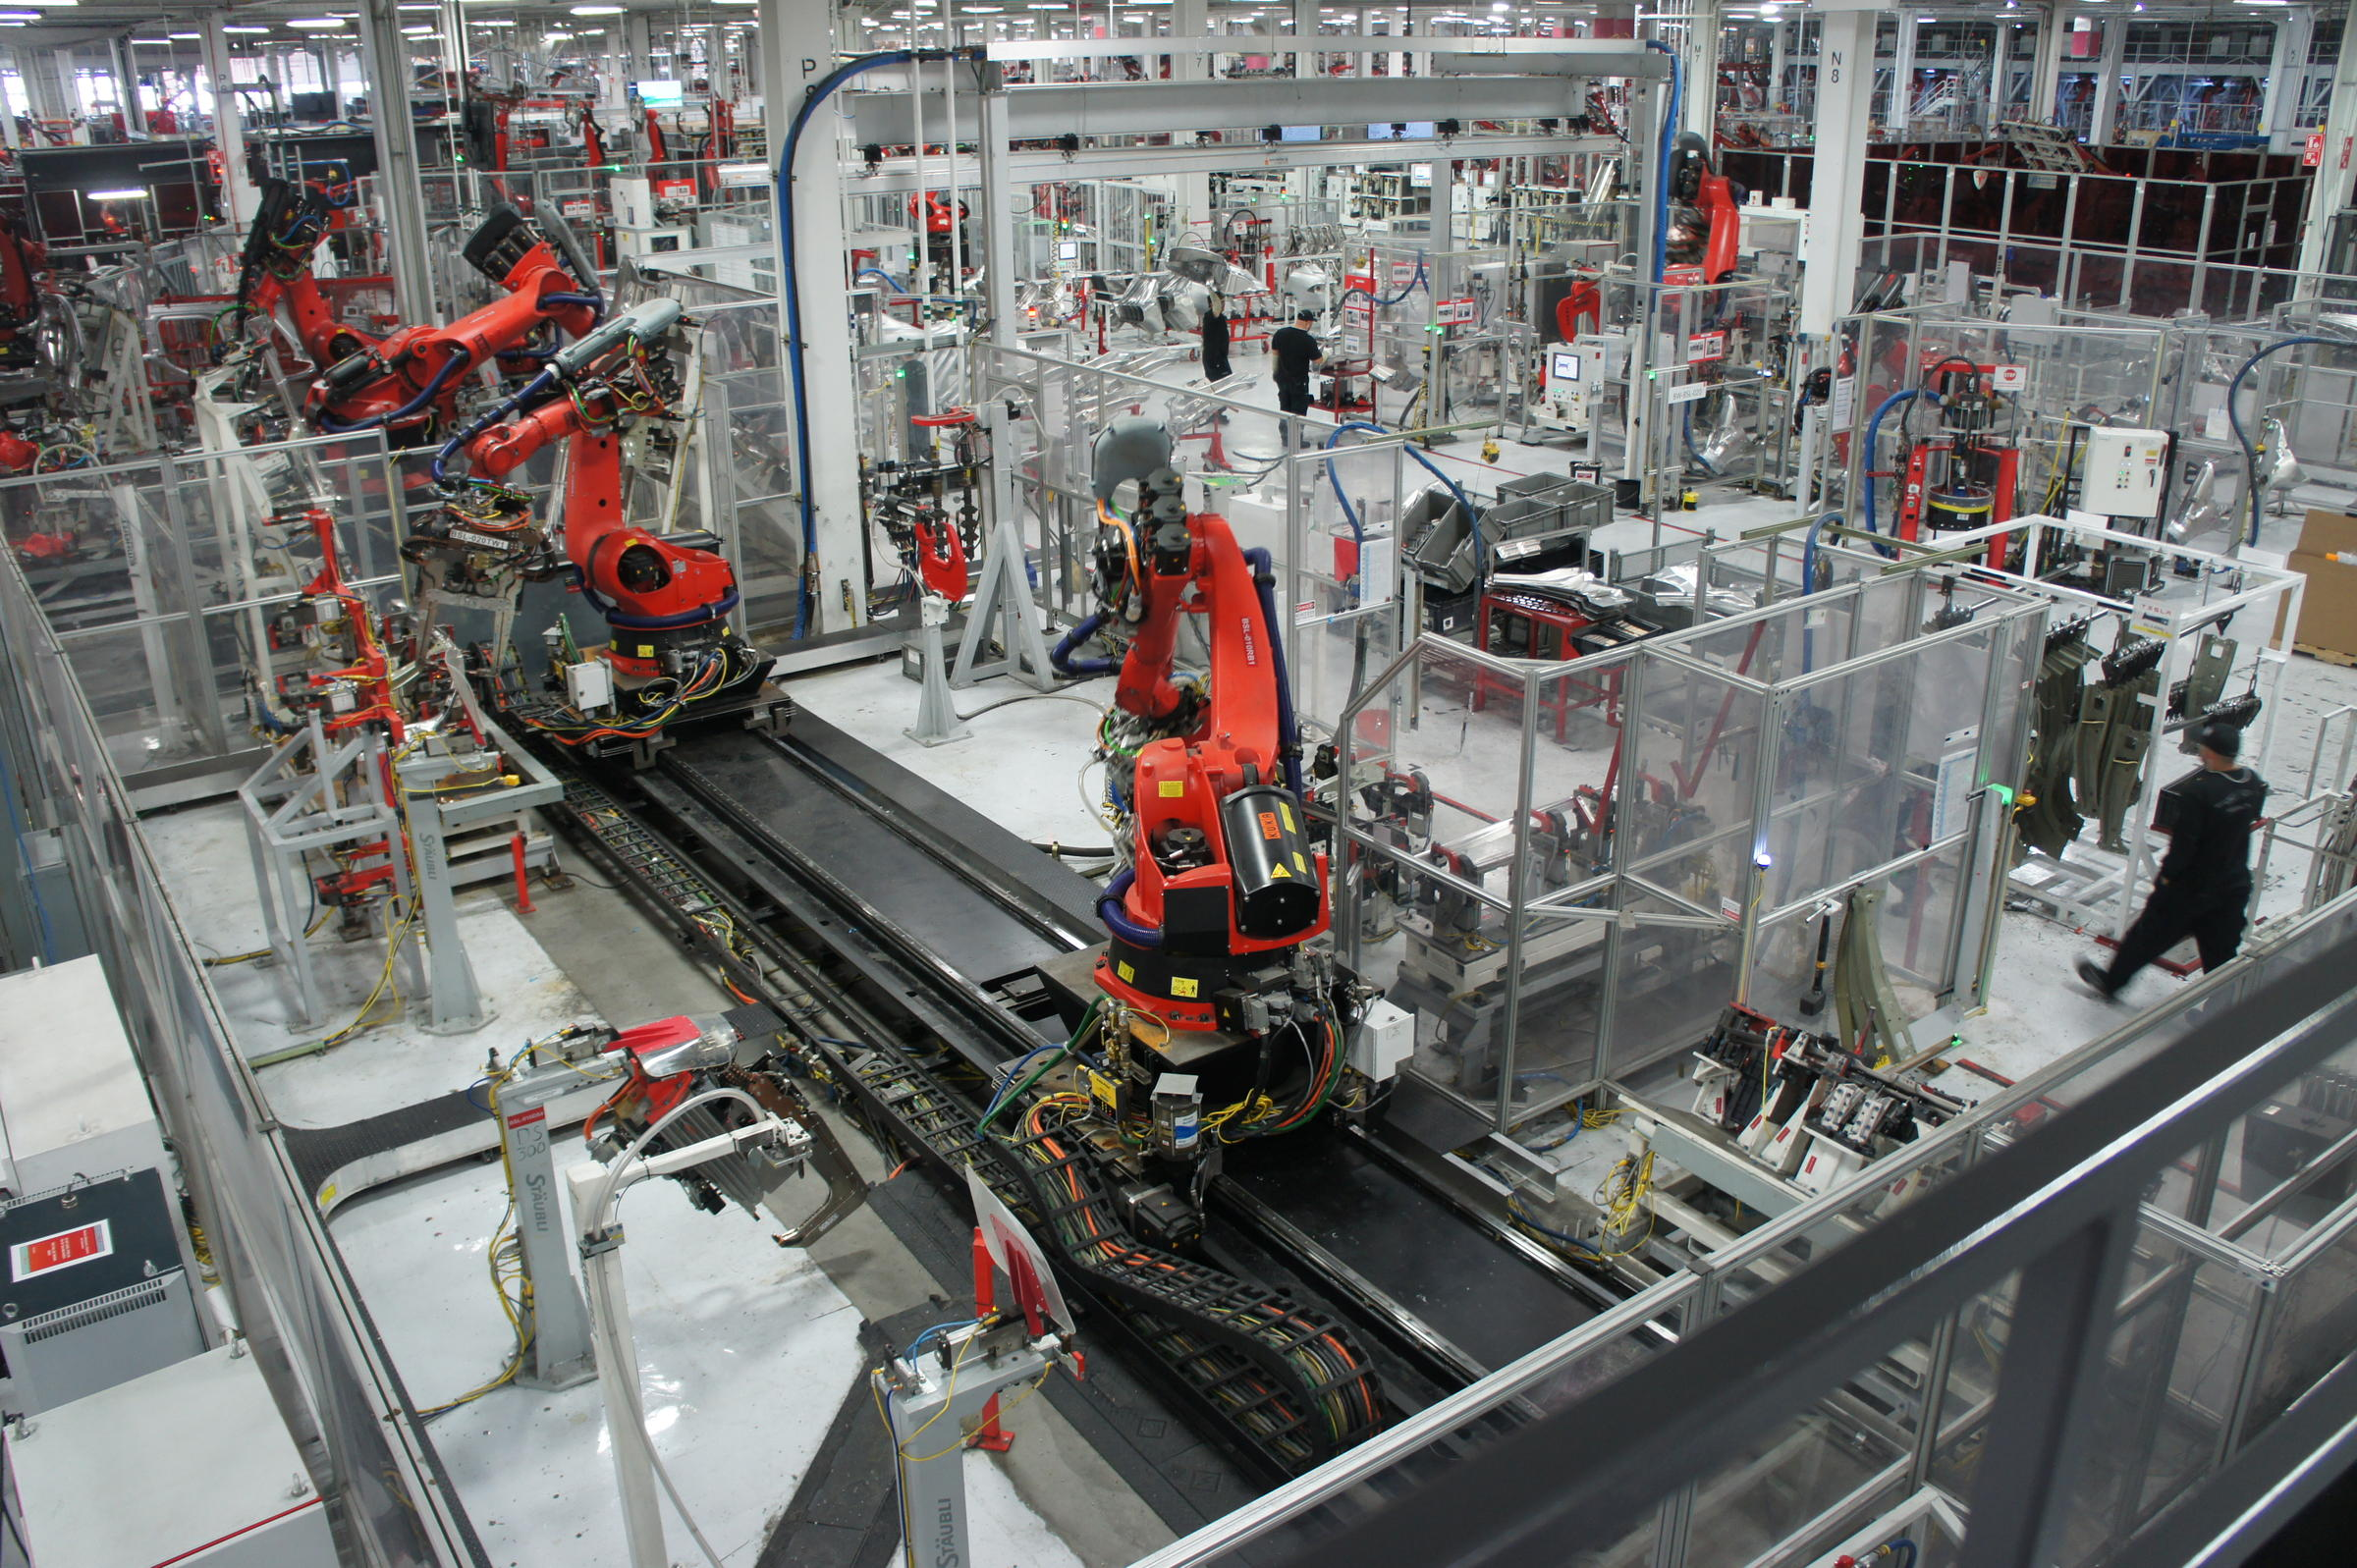 A publicity still from the Tesla Factory's interior, showing the high degree of robotic automation in the plant. Despite the application of new technology, Tesla's current output remains only a fraction of NUMMI's.